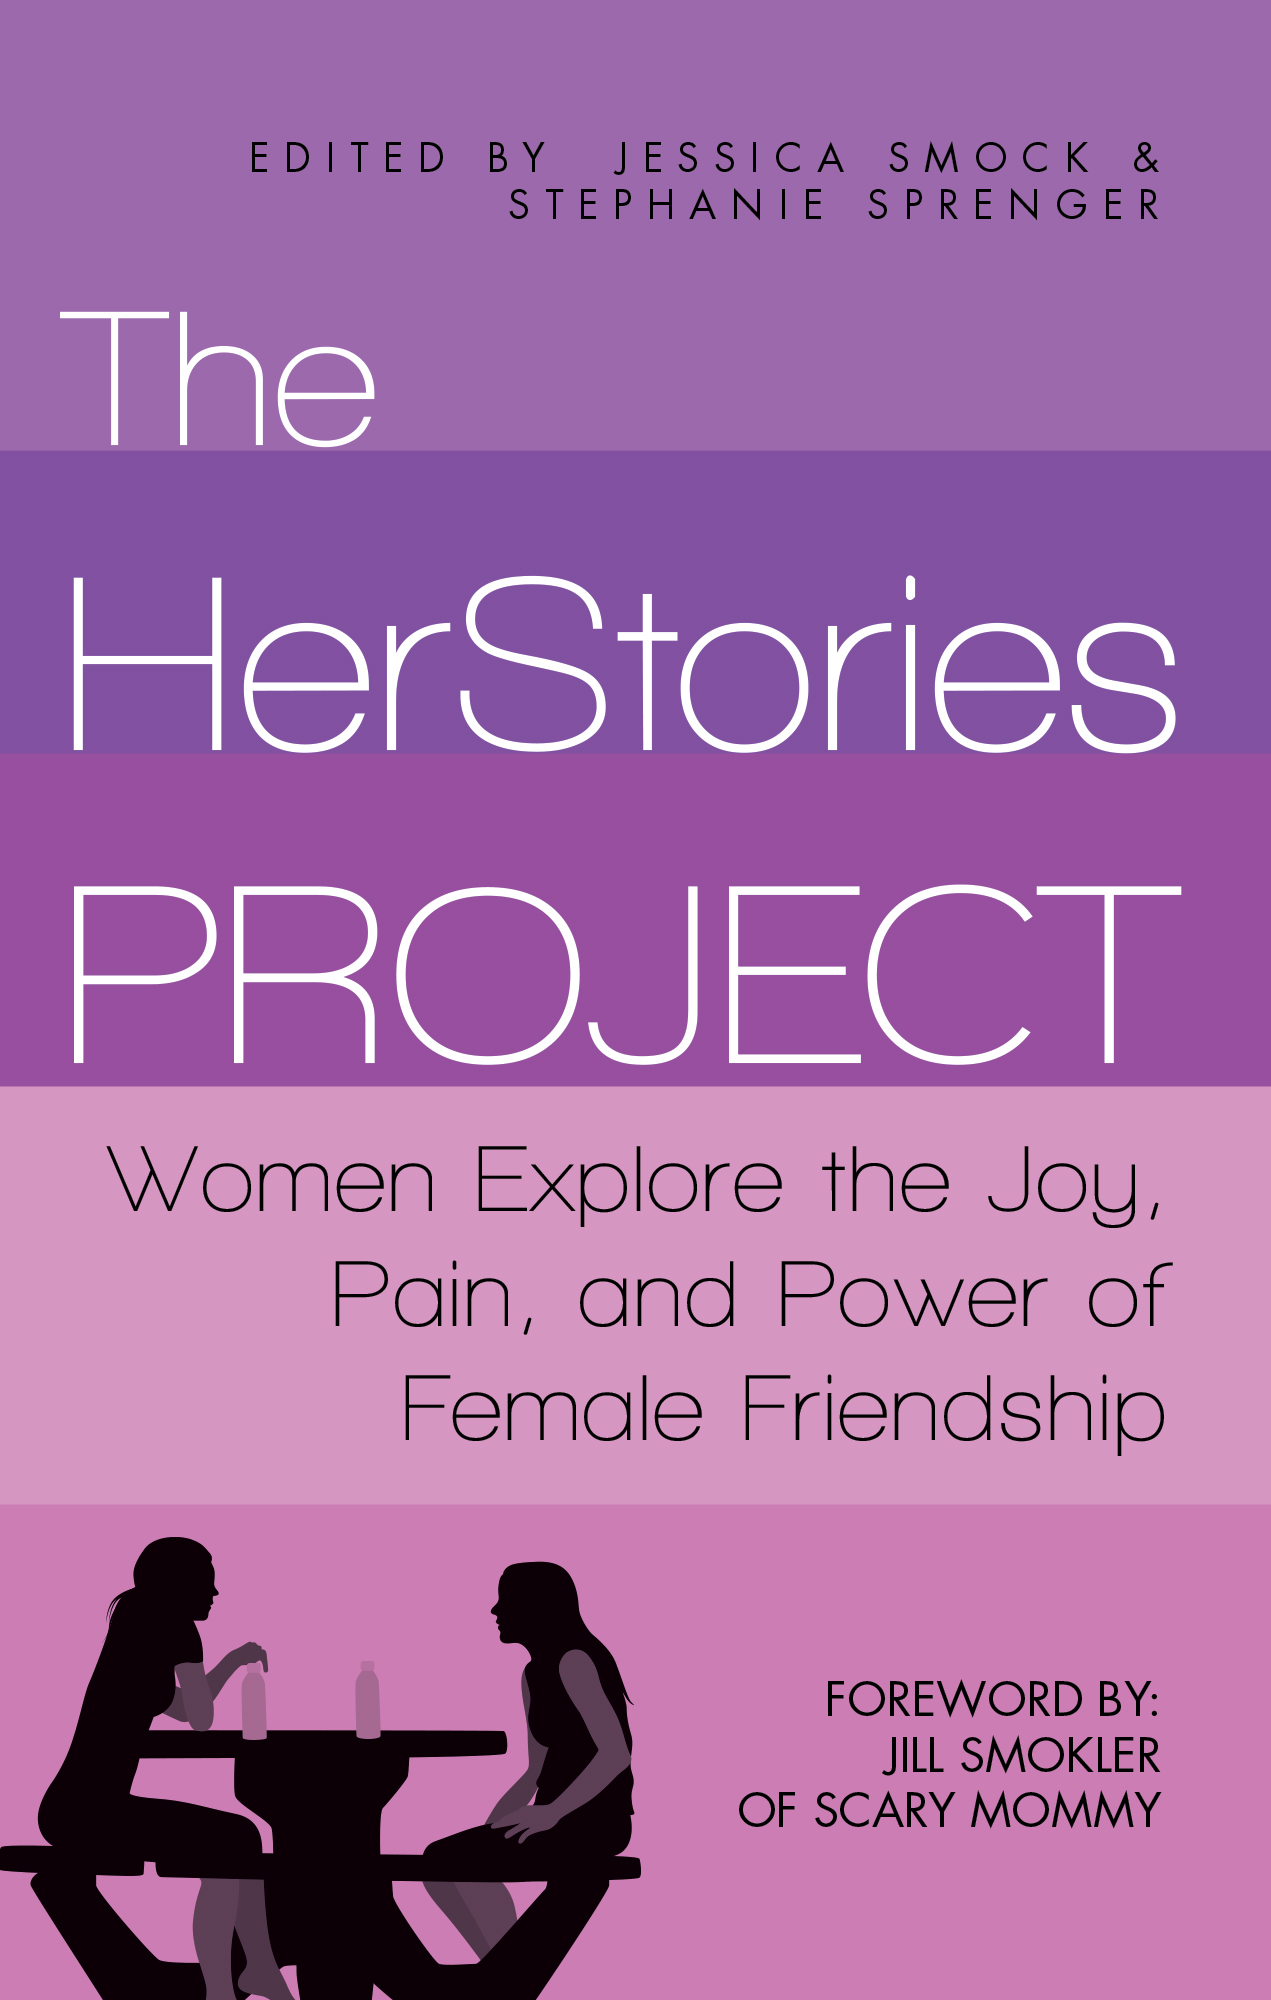 The HerStories Project: Anthology #1 - School of Smock